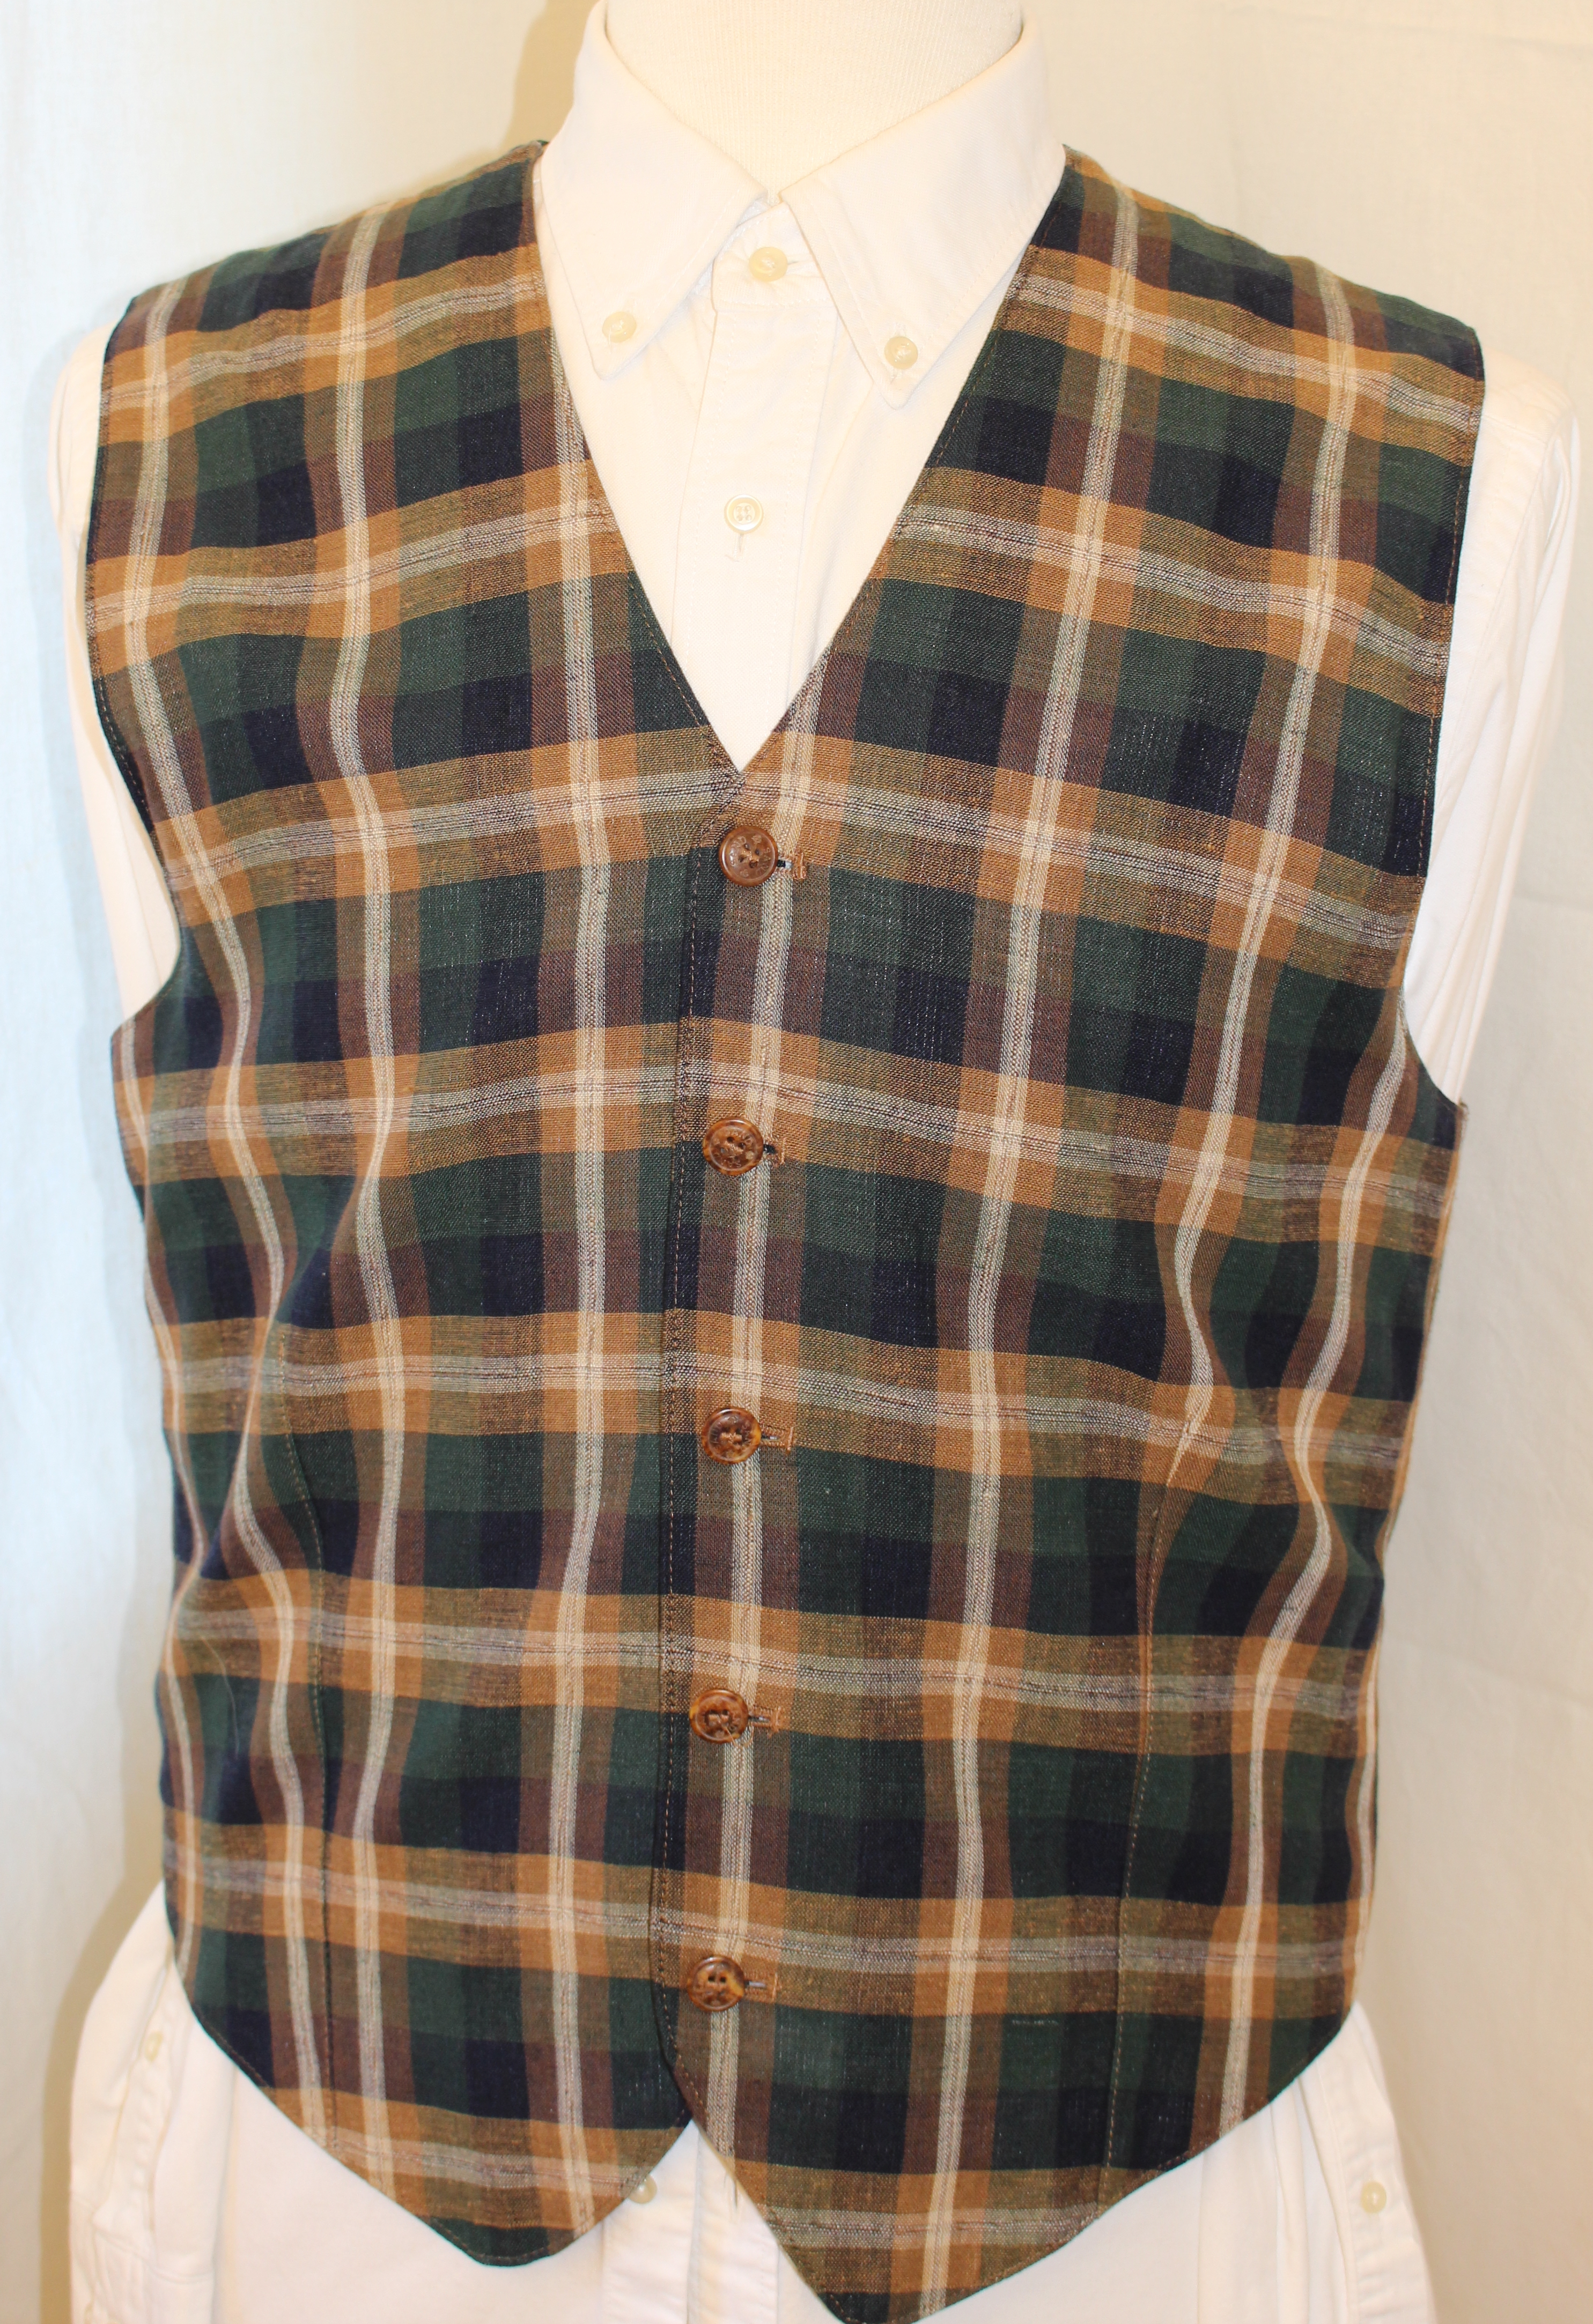 "Lovely madras check linen waistcoat by premium Danish menswear brand Sand. Sparingly worn. Size medium, P2P is xx"". Asking 55 pounds for this great Summer number."